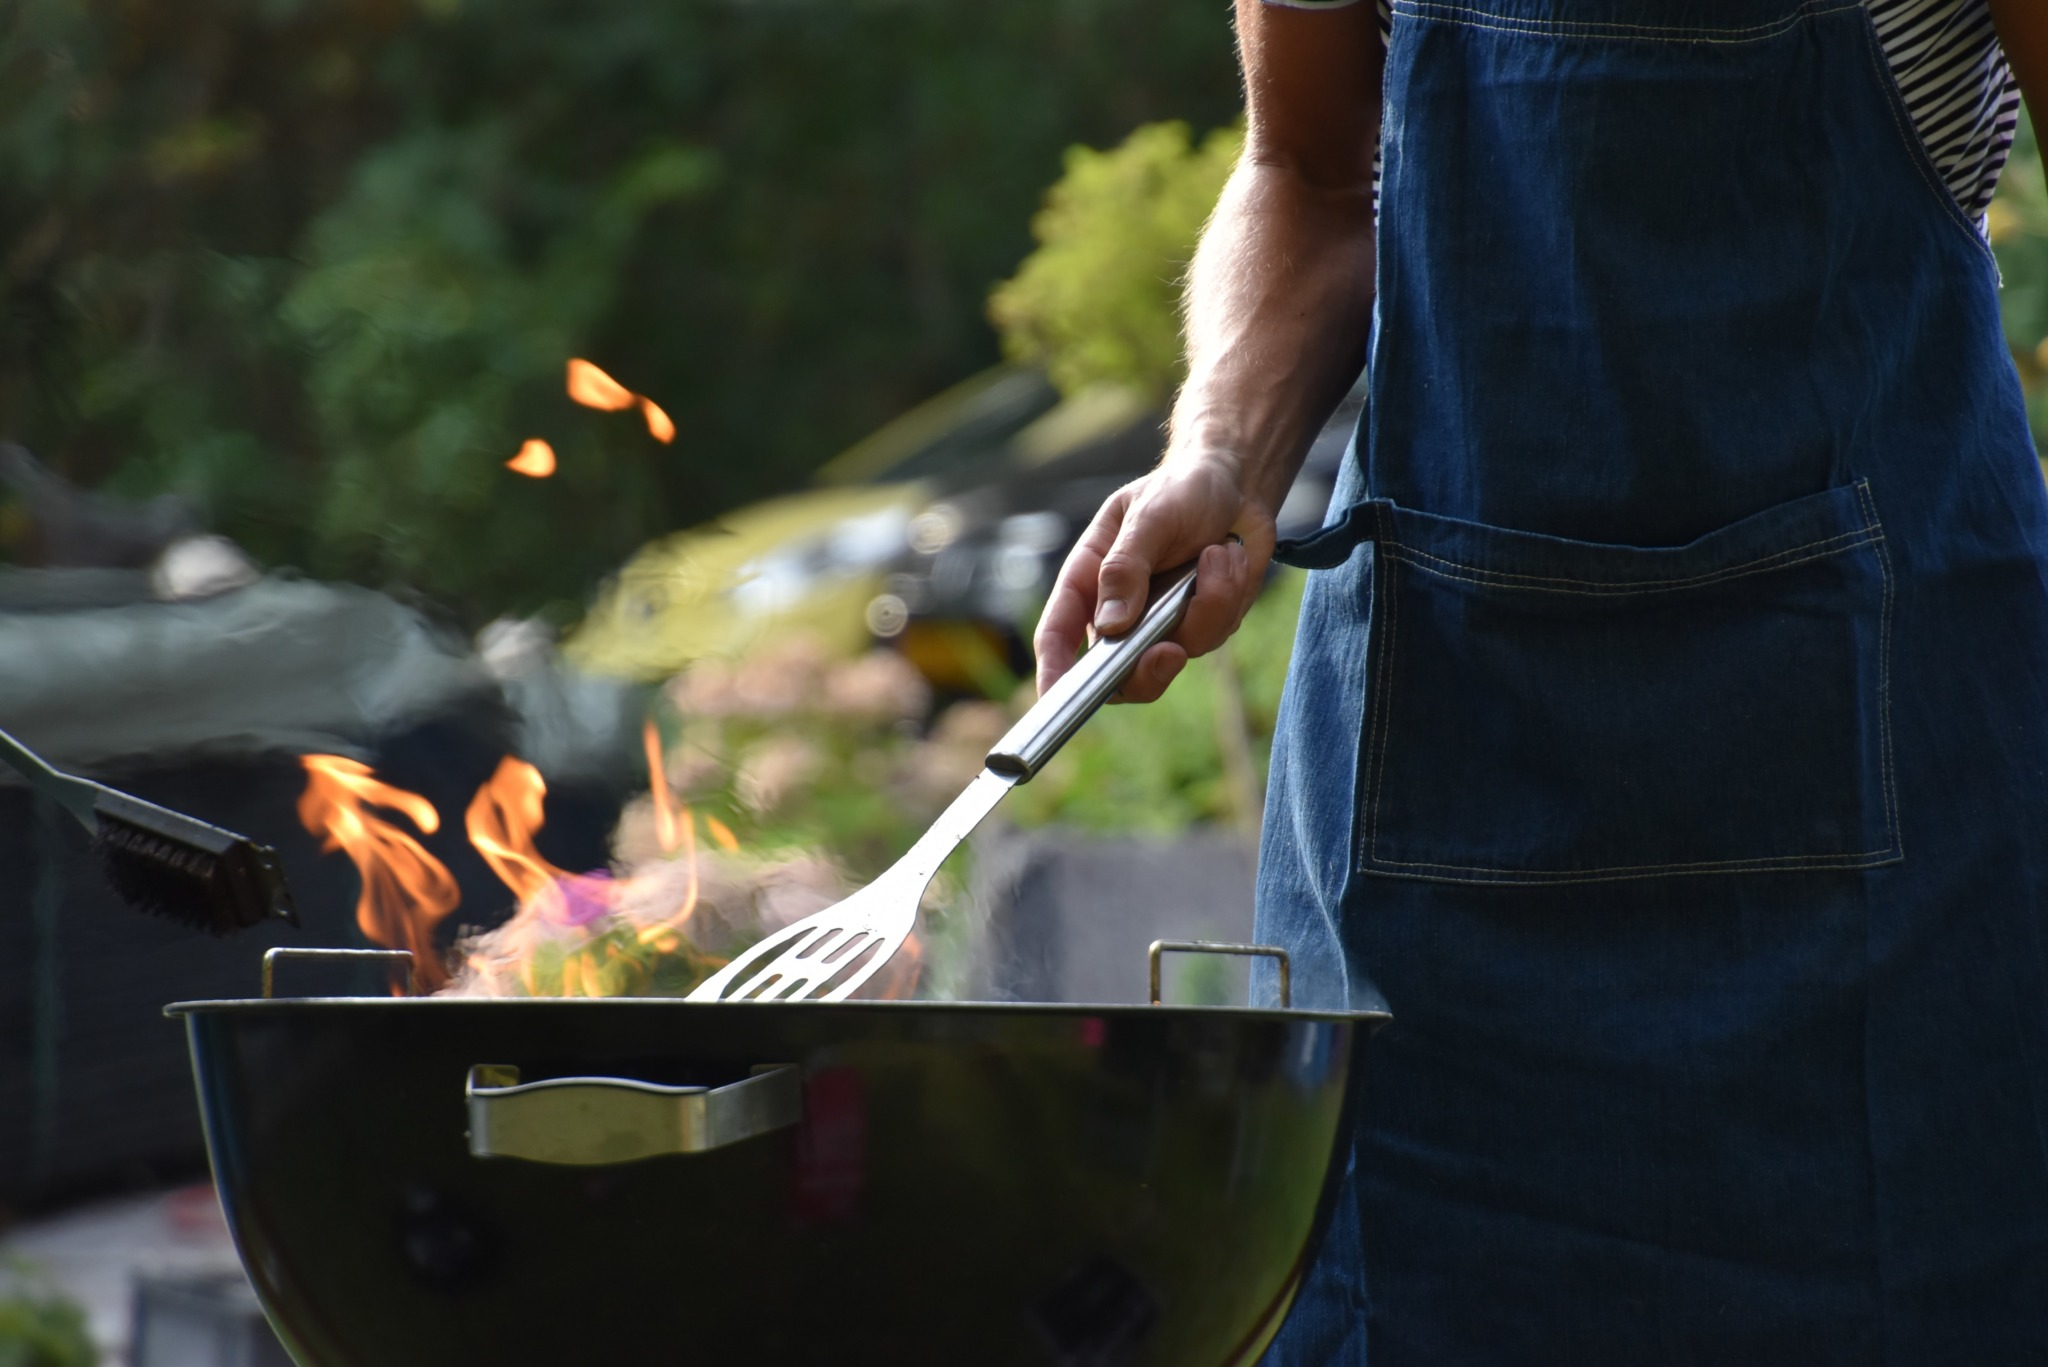 man places spatula on blazing grill outside